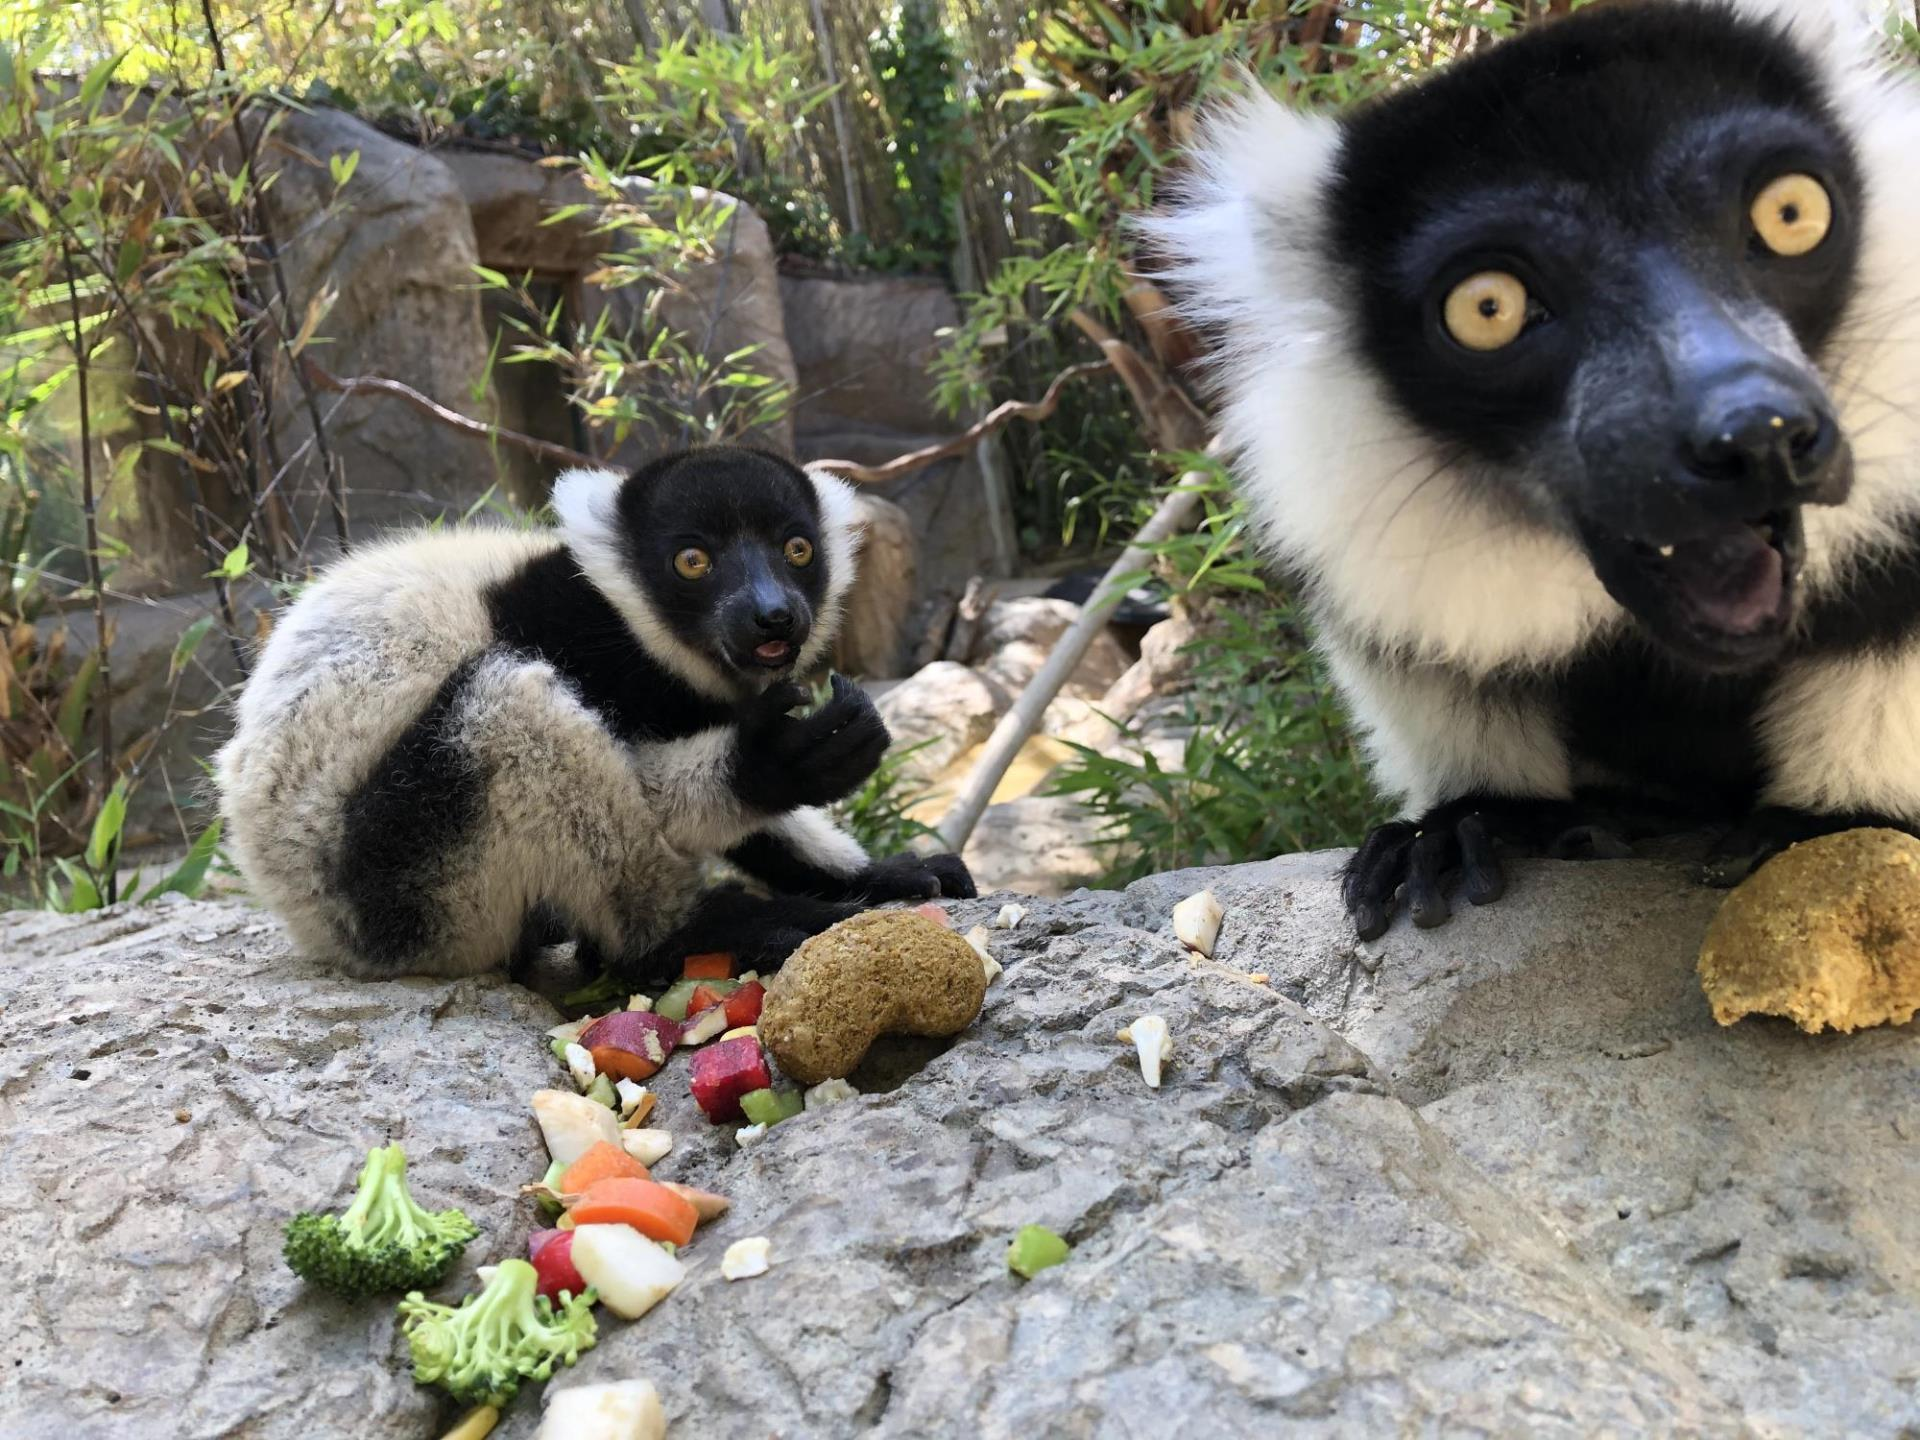 Image of two young lemurs outside on a rock with food around them